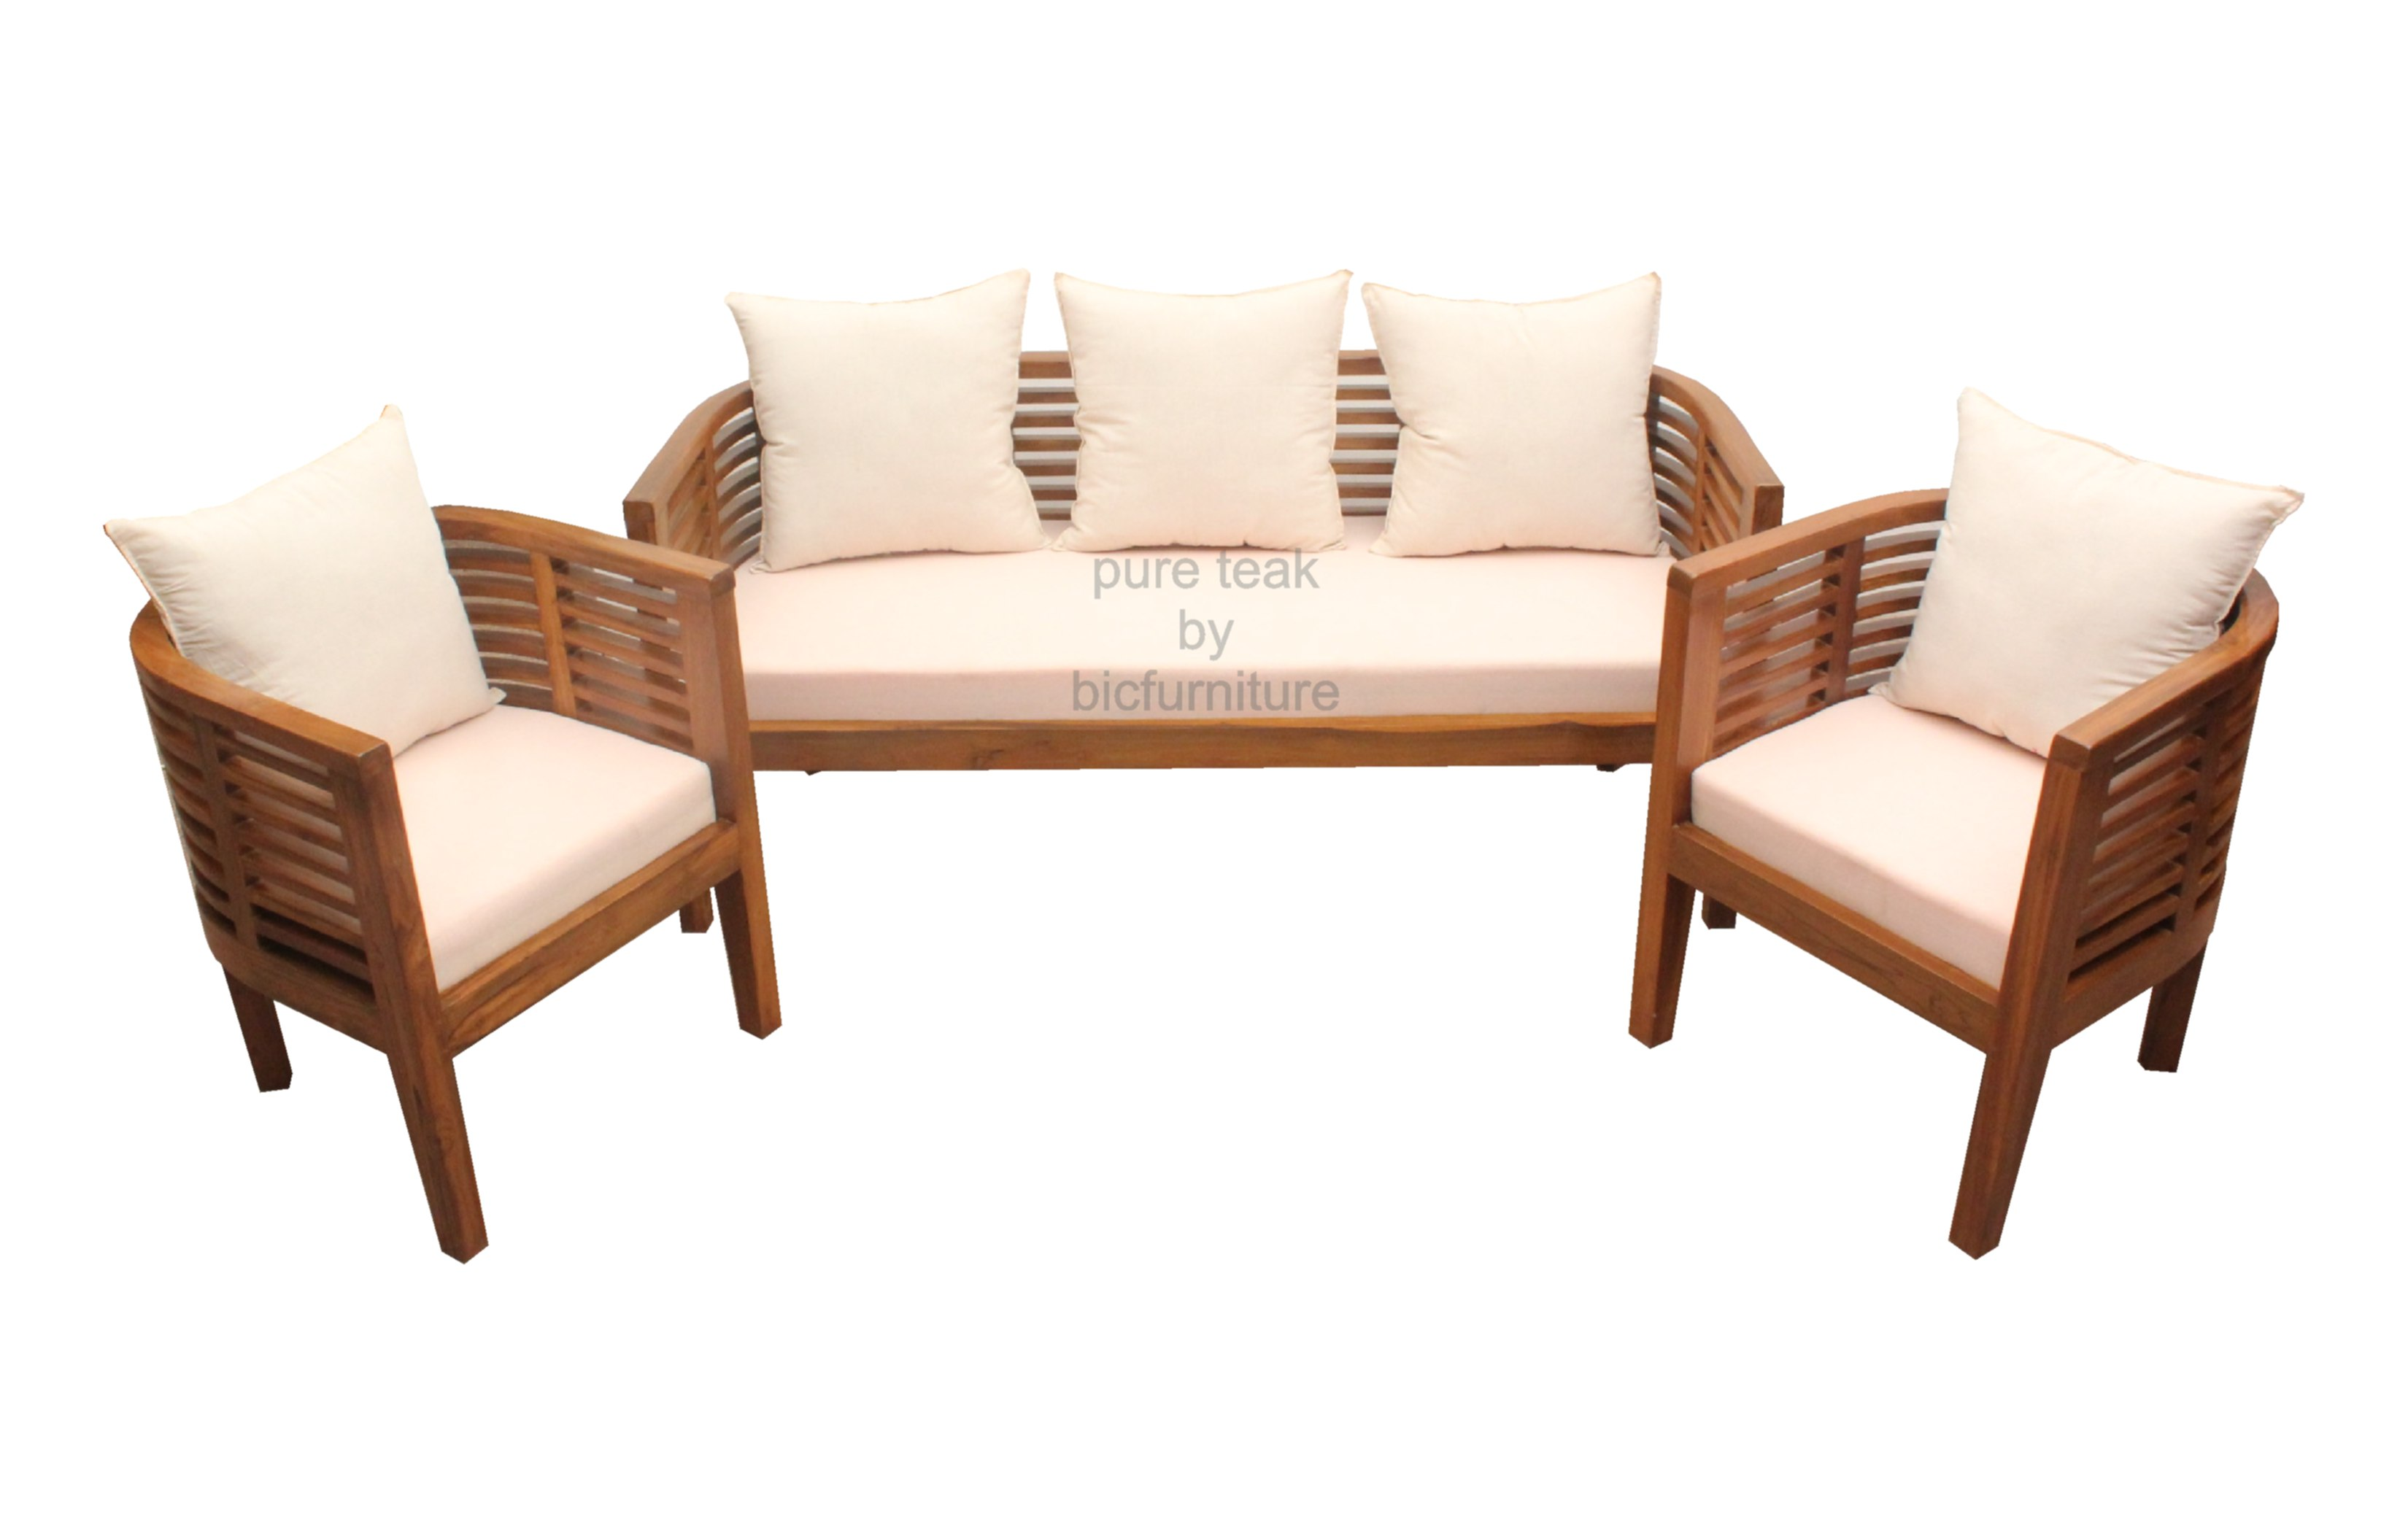 Teak Wood Round Sofa Makers In Sleek Mumbai Homes Design ~ Wooden Sofa Sets For Living Room